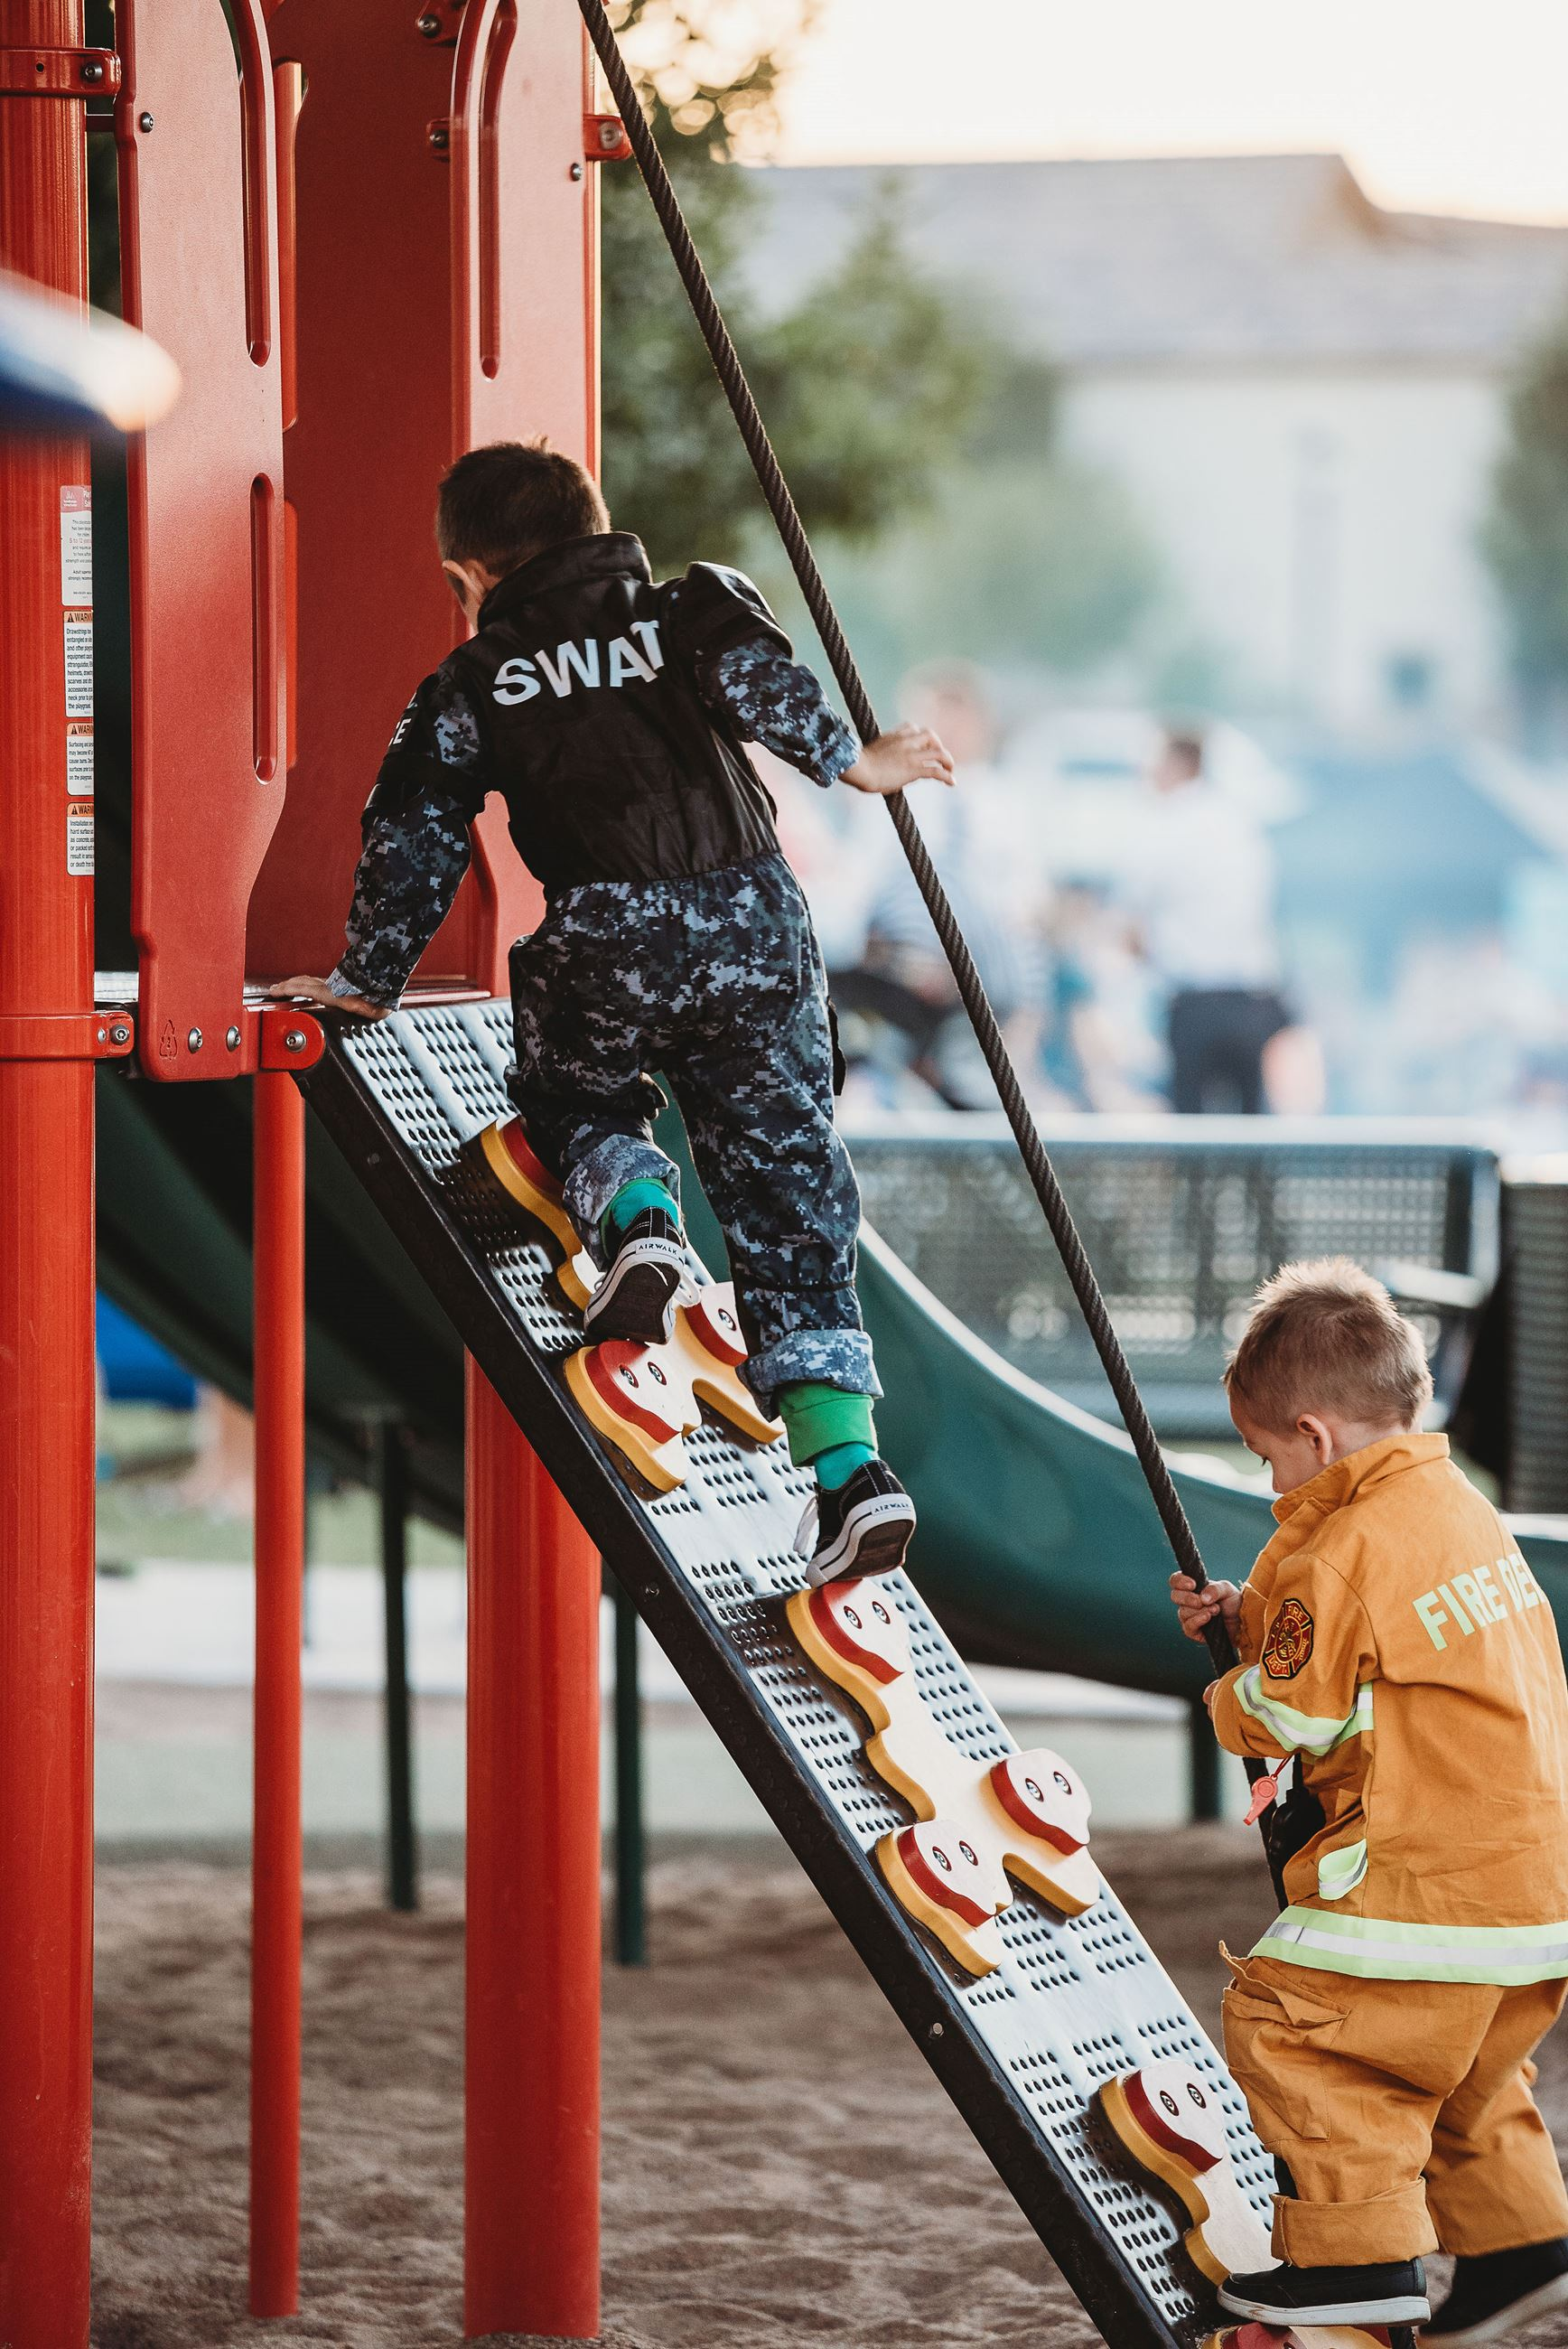 Two Young Boys Dressed as a SWAT Team Soldier and a Firefirefighter Climb a Play Structure